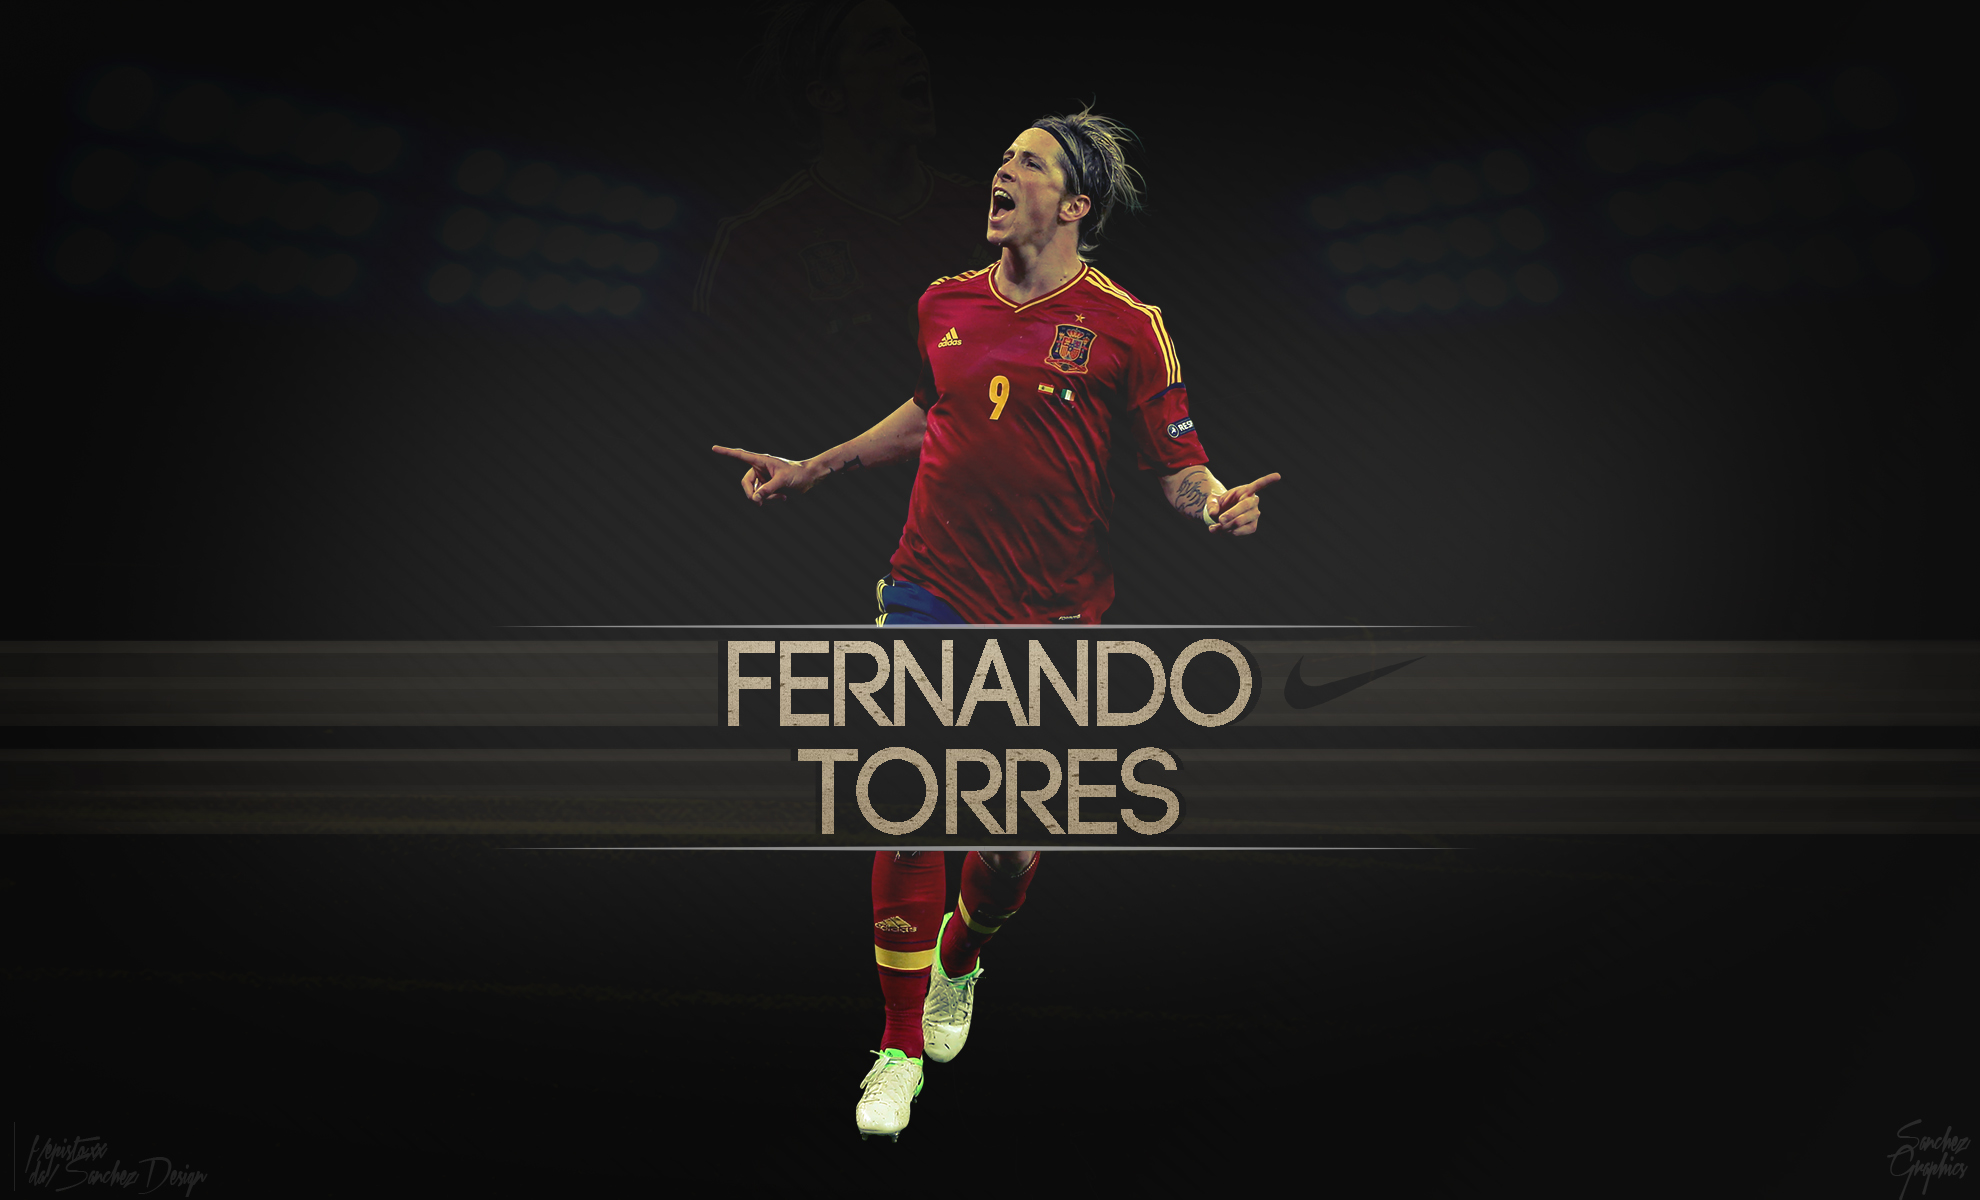 Fernando Torres Best Wallpaper   Football HD Wallpapers 1980x1200